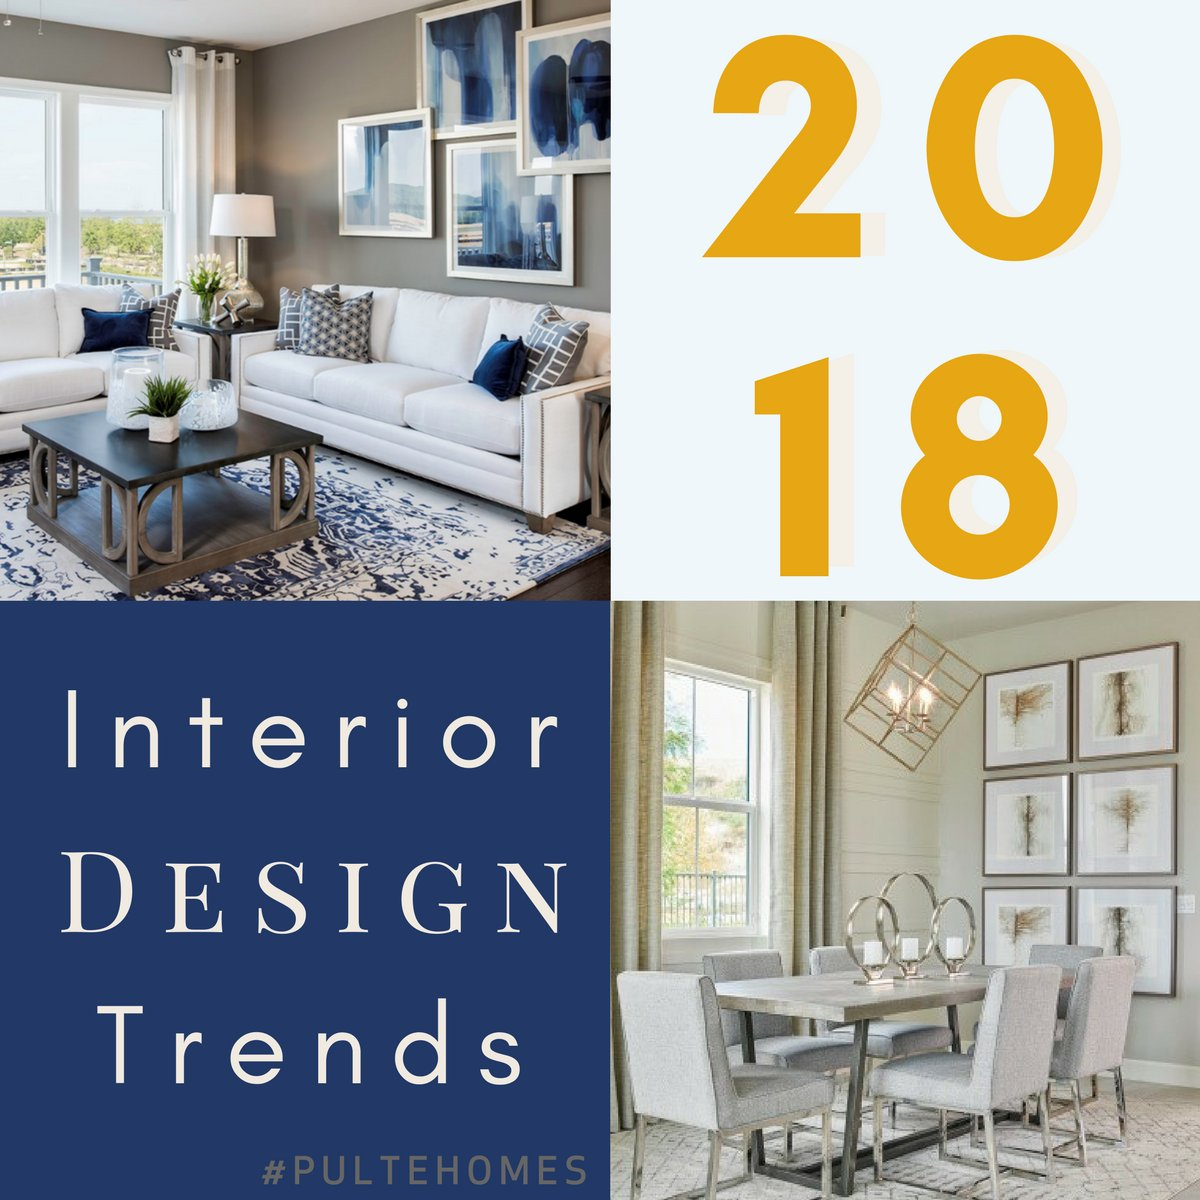 ... 2018 From Our #PulteHomes Design Team. What Styles Do You Think Made  The List? Tweet Us Your Predictions Or Check Them Out Here:  Http://bit.ly/2CRVNd9 ...